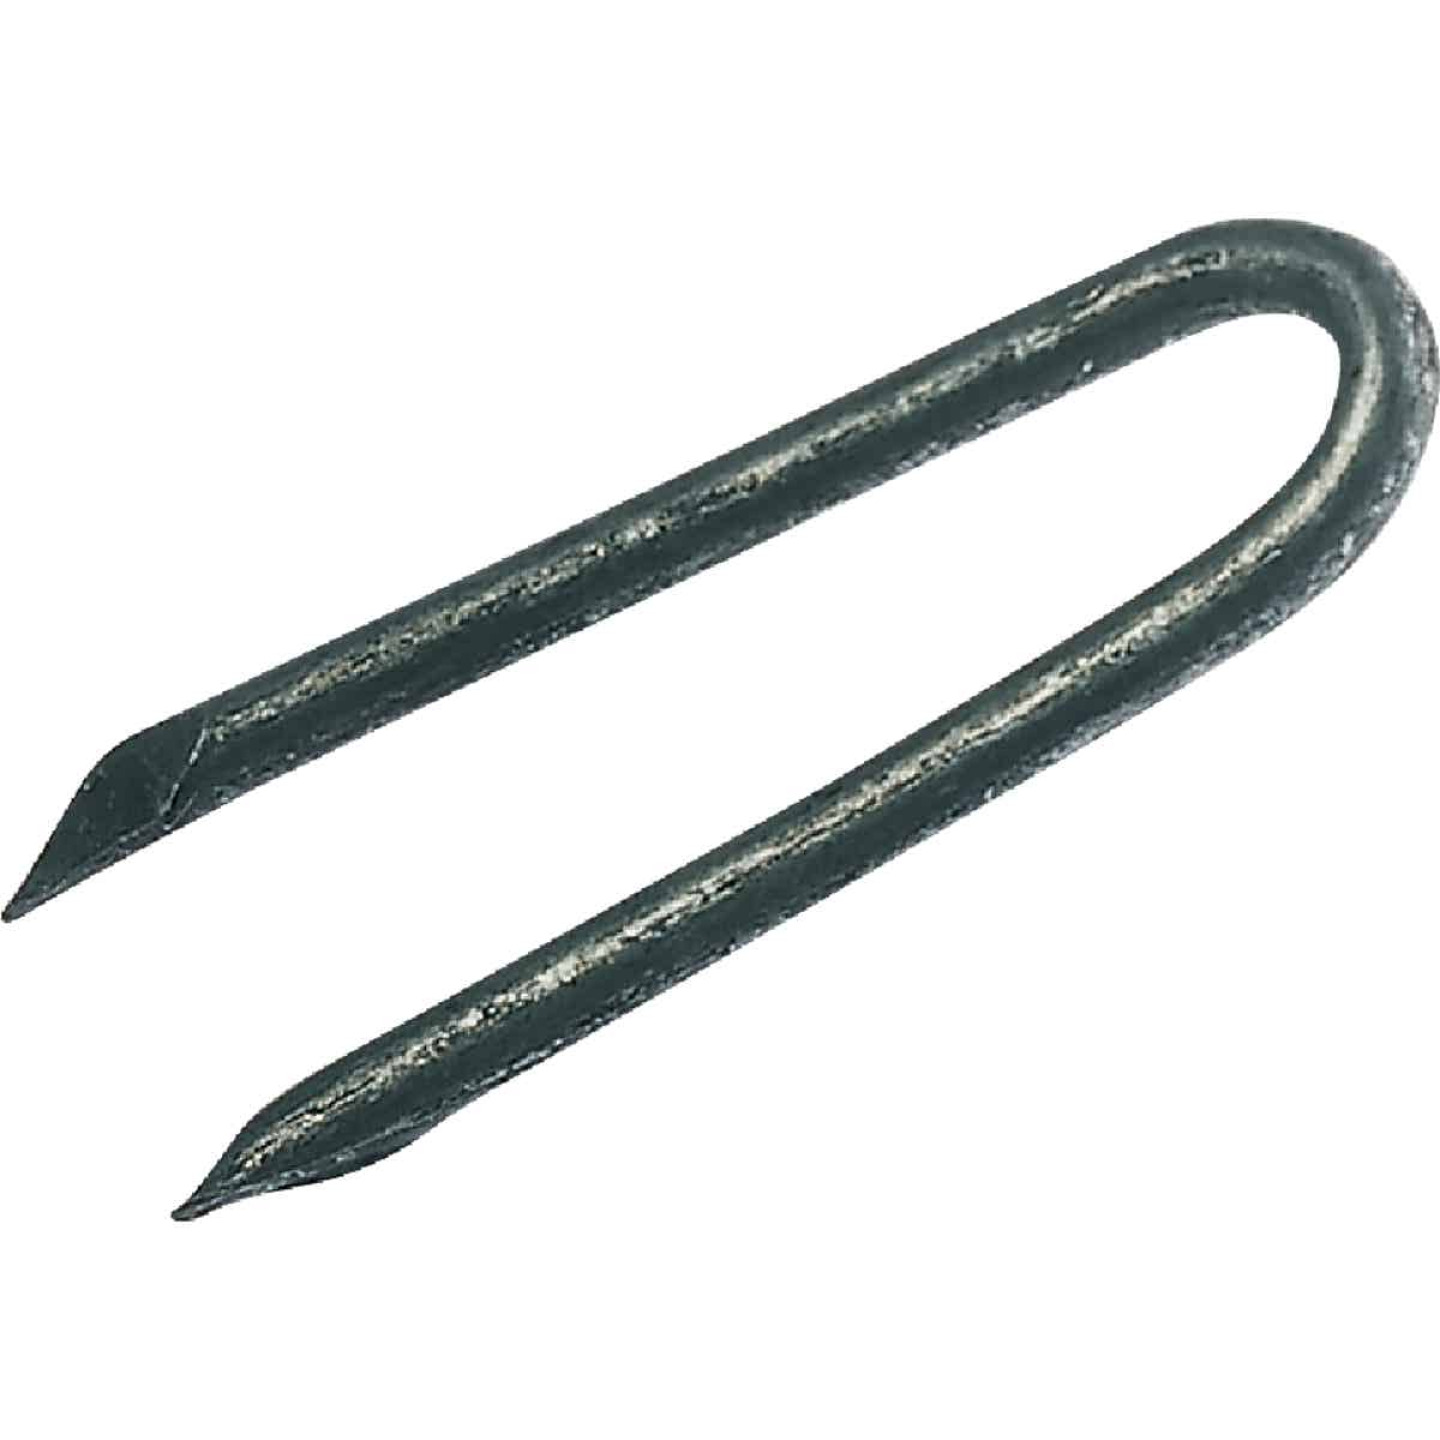 Grip-Rite 1-1/2 In. 9 ga Hot Galvanized Fence Staple (3600 Ct., 50 Lb.) Image 1